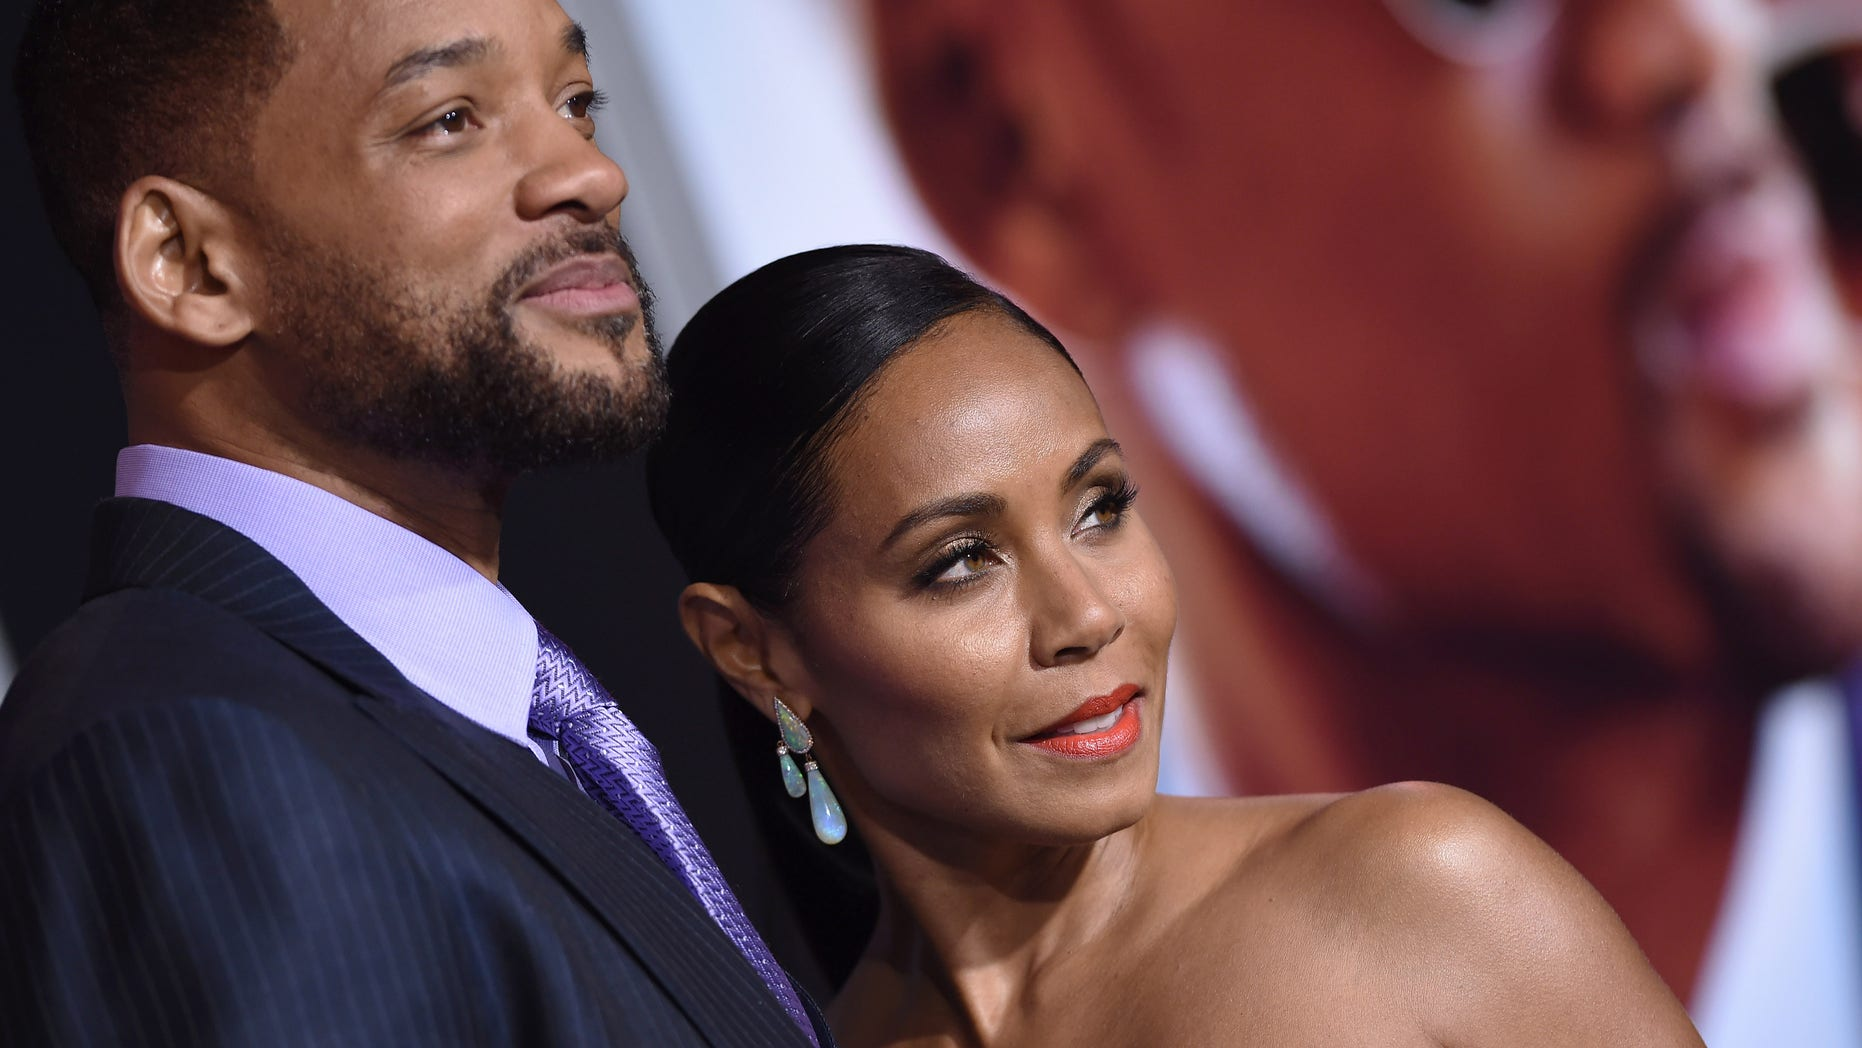 Jada Pinkett Smith explained why she and her husband, Will Smith, never celebrate wedding anniversaries.